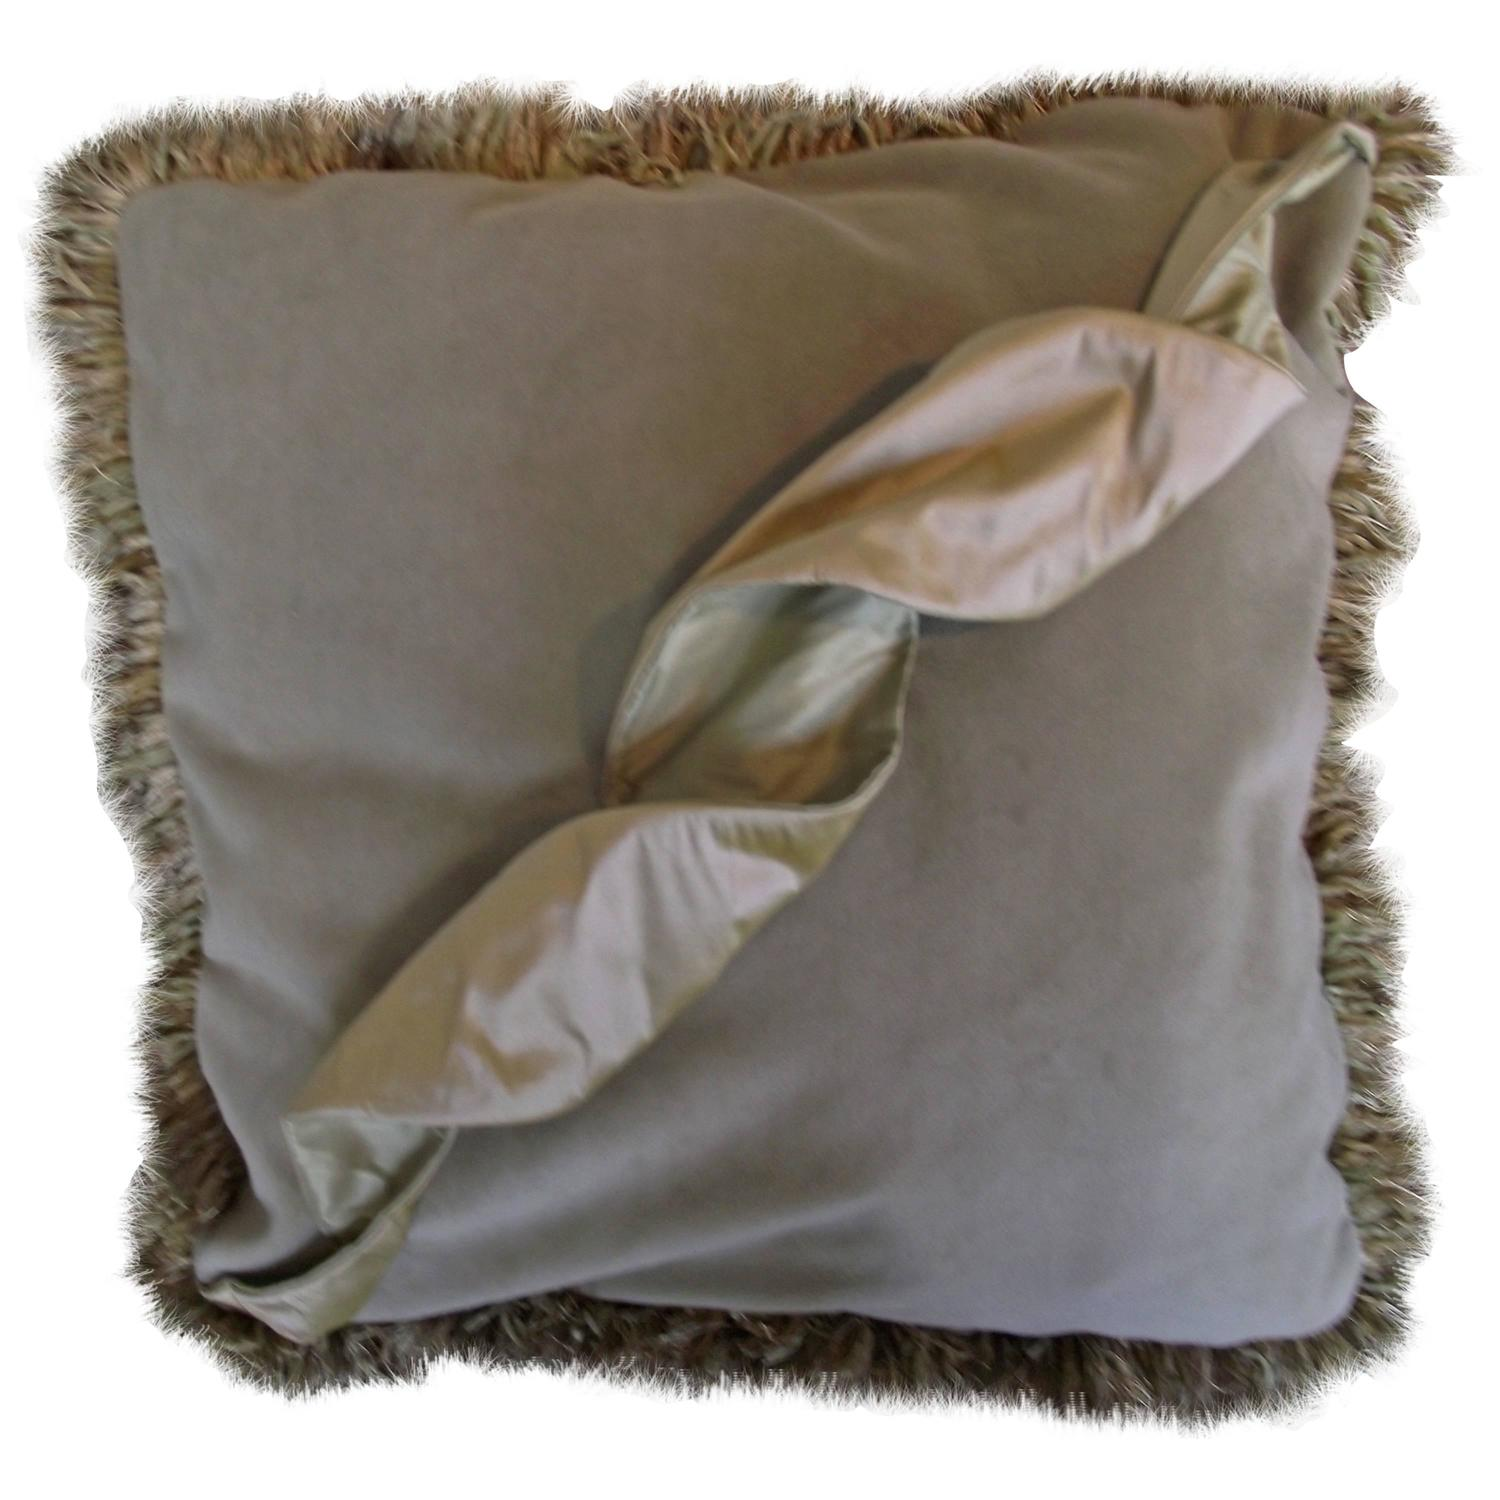 statement throw pillows, unusual pillows, philosophy pillows,gifts Unusual Cushions to Make